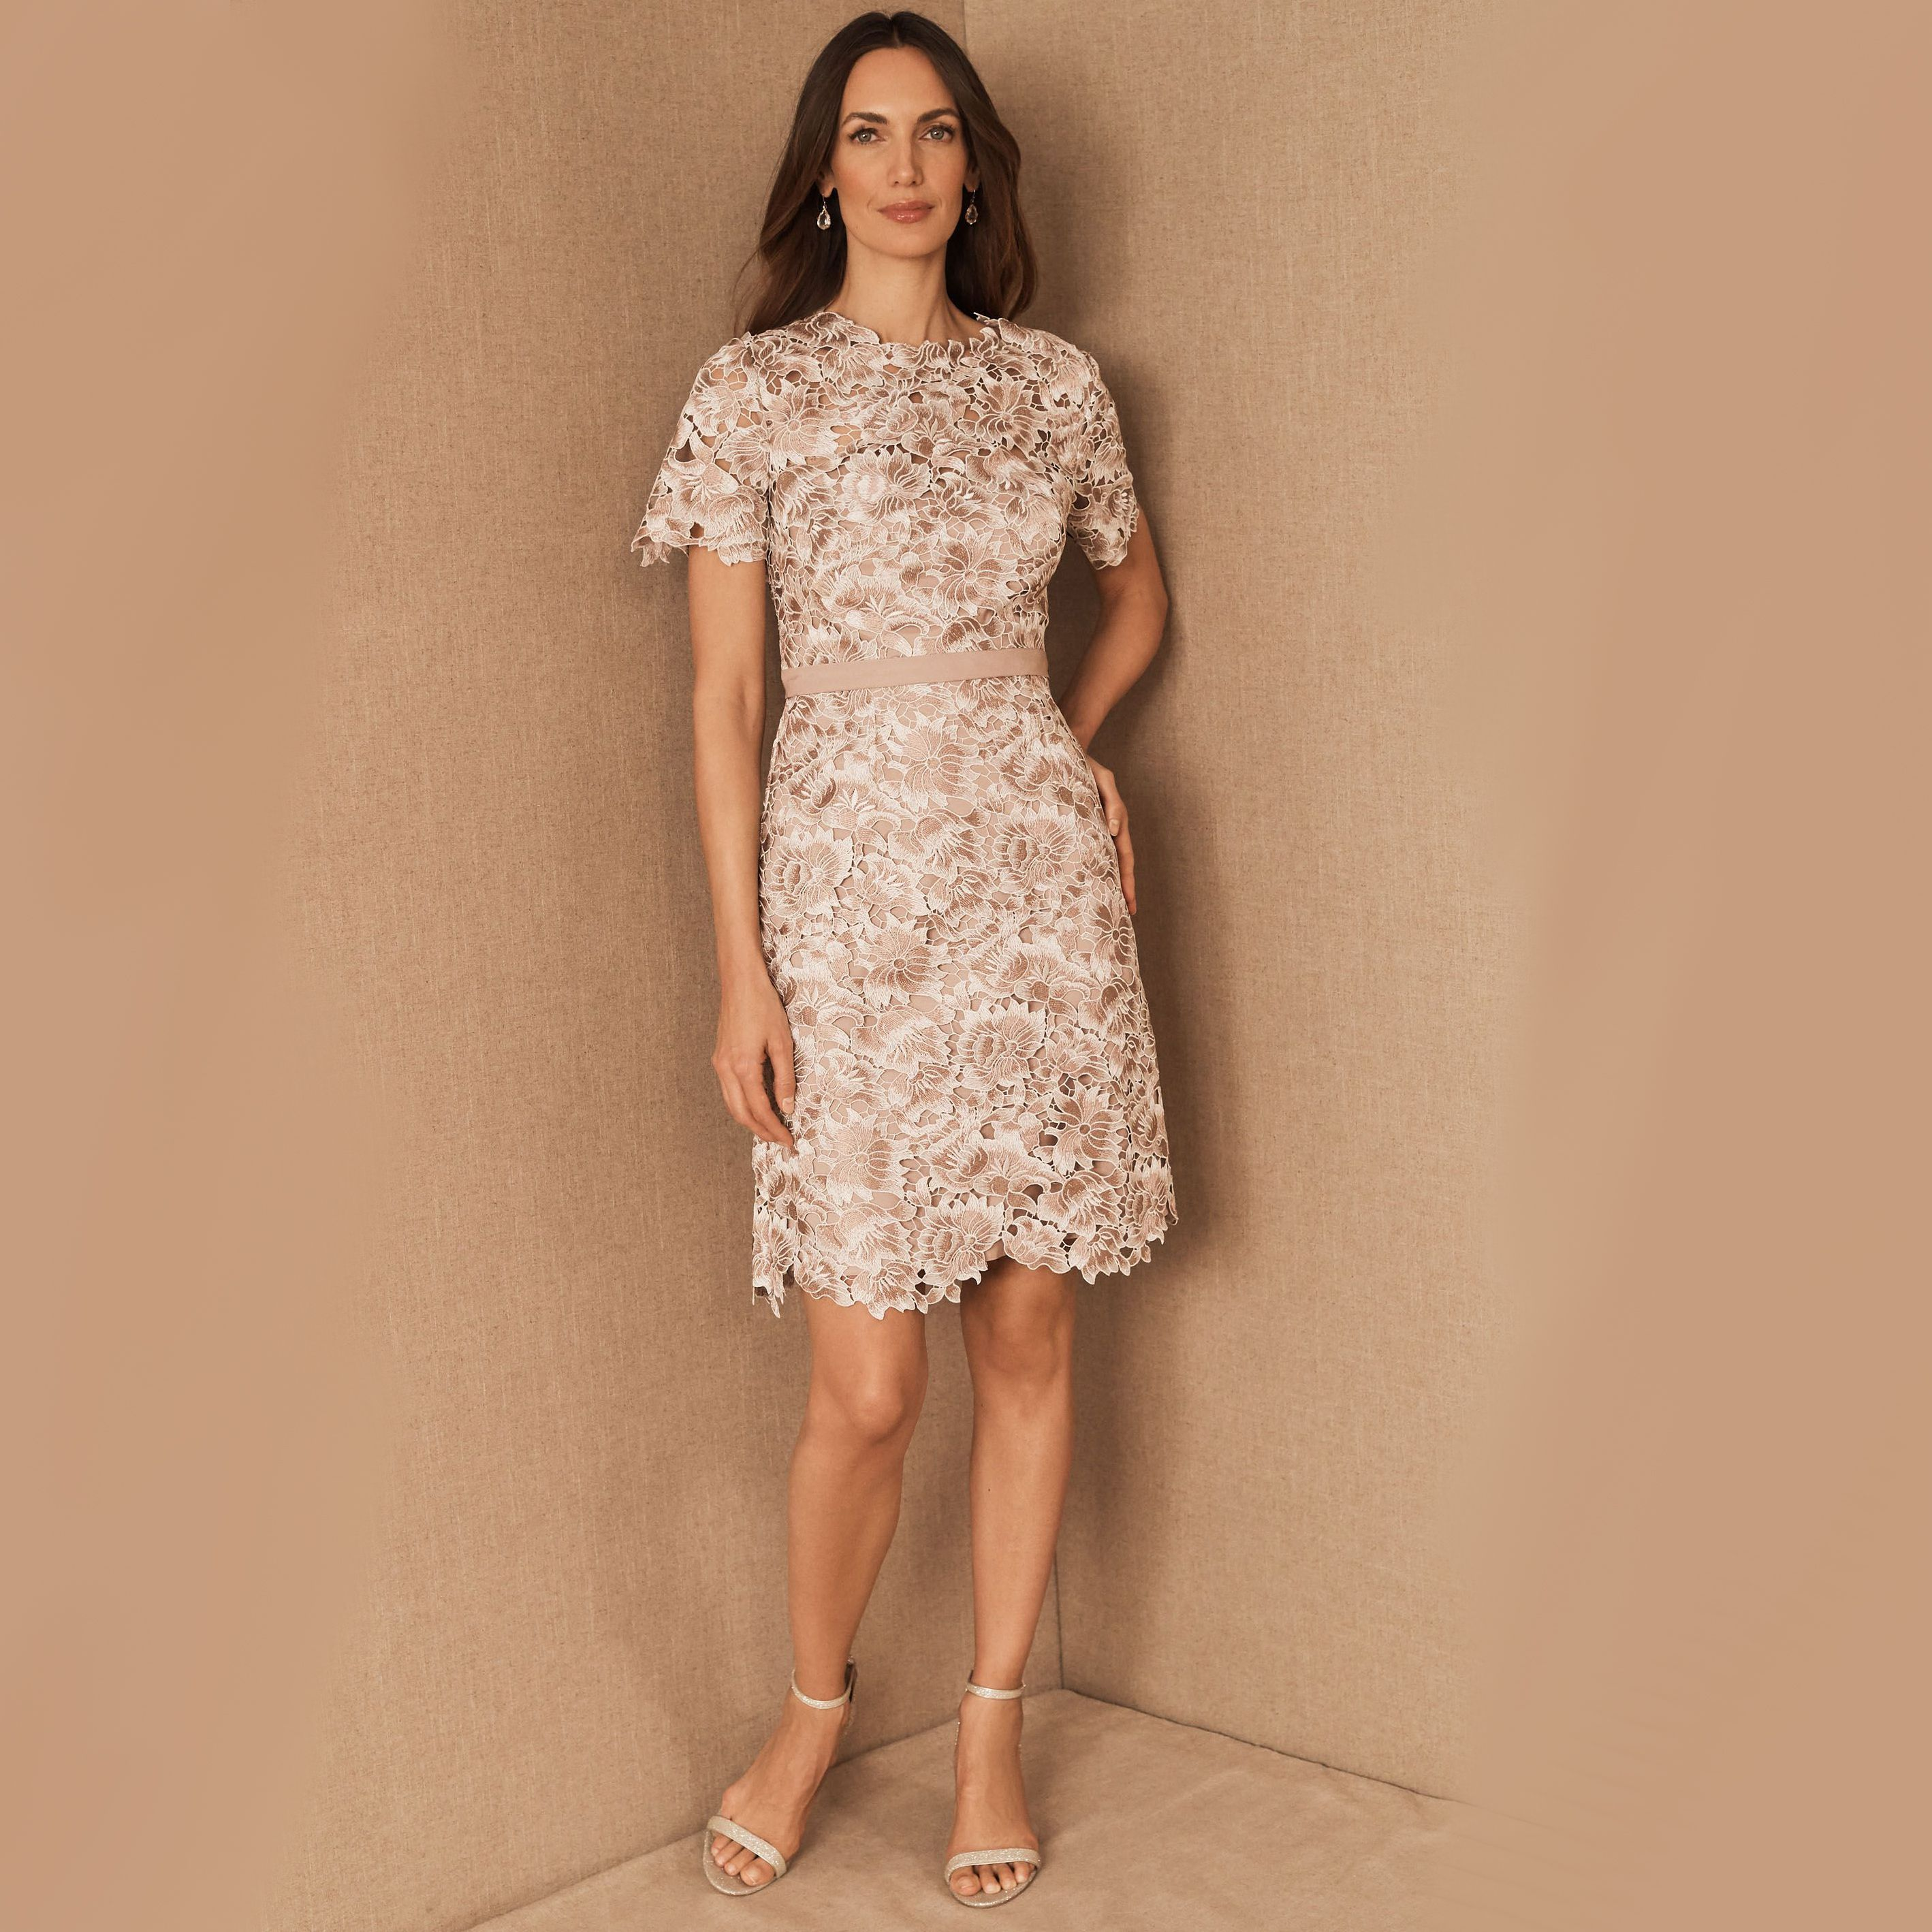 18 Best Short Mother Of The Bride Dresses Of 2021